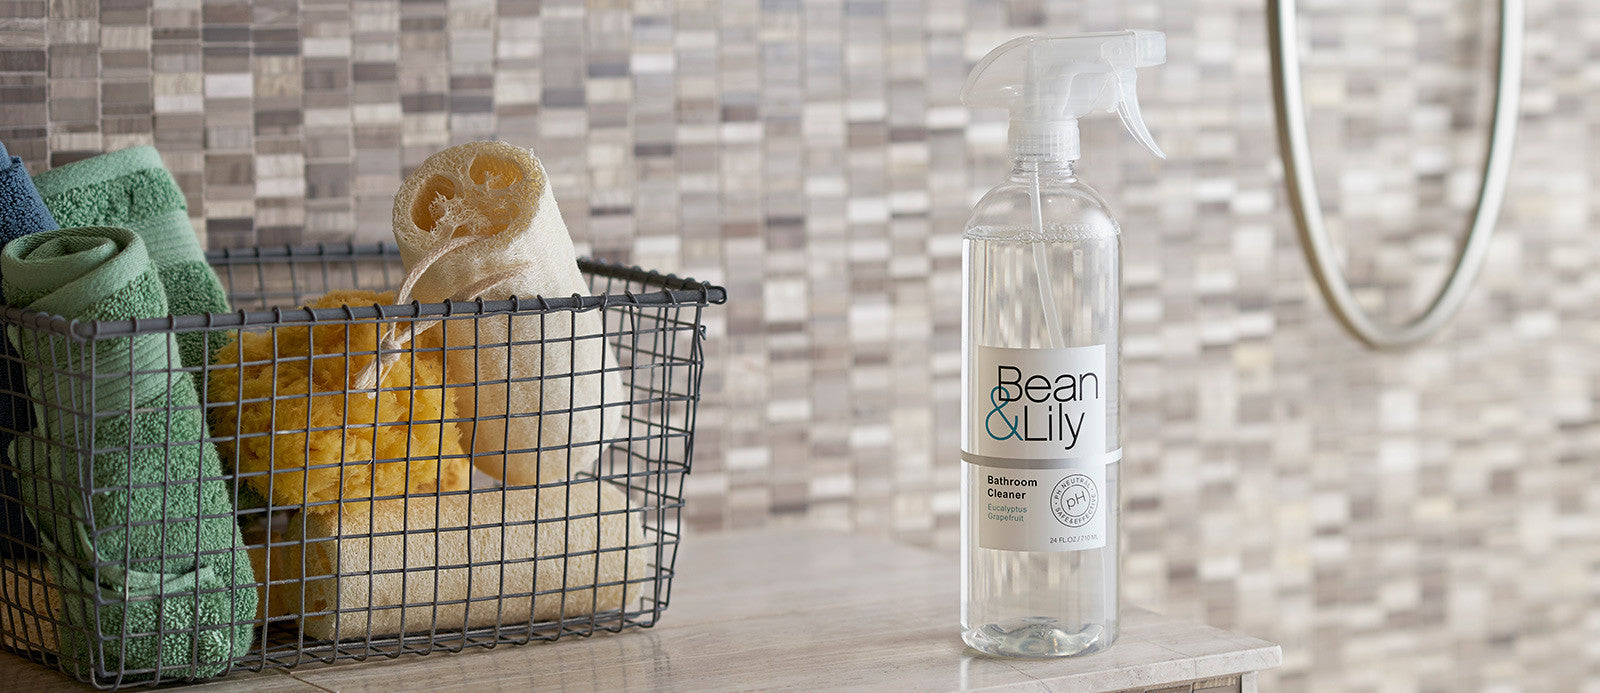 Bean & Lily Bathroom Cleaner